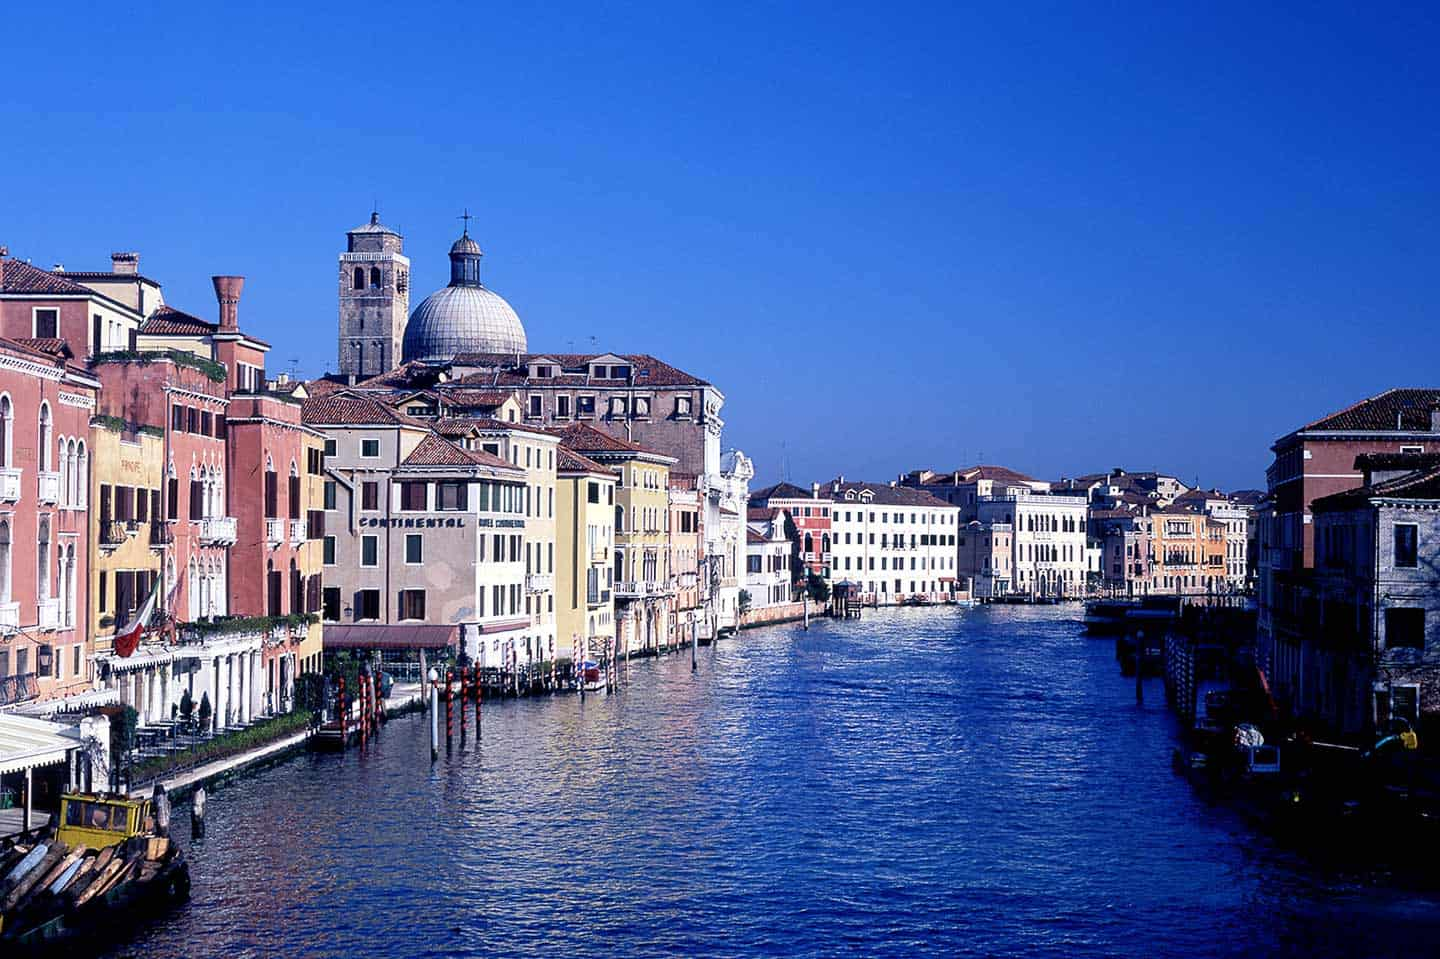 Image of San Geremia church and the Grand Canal in Venice Italy